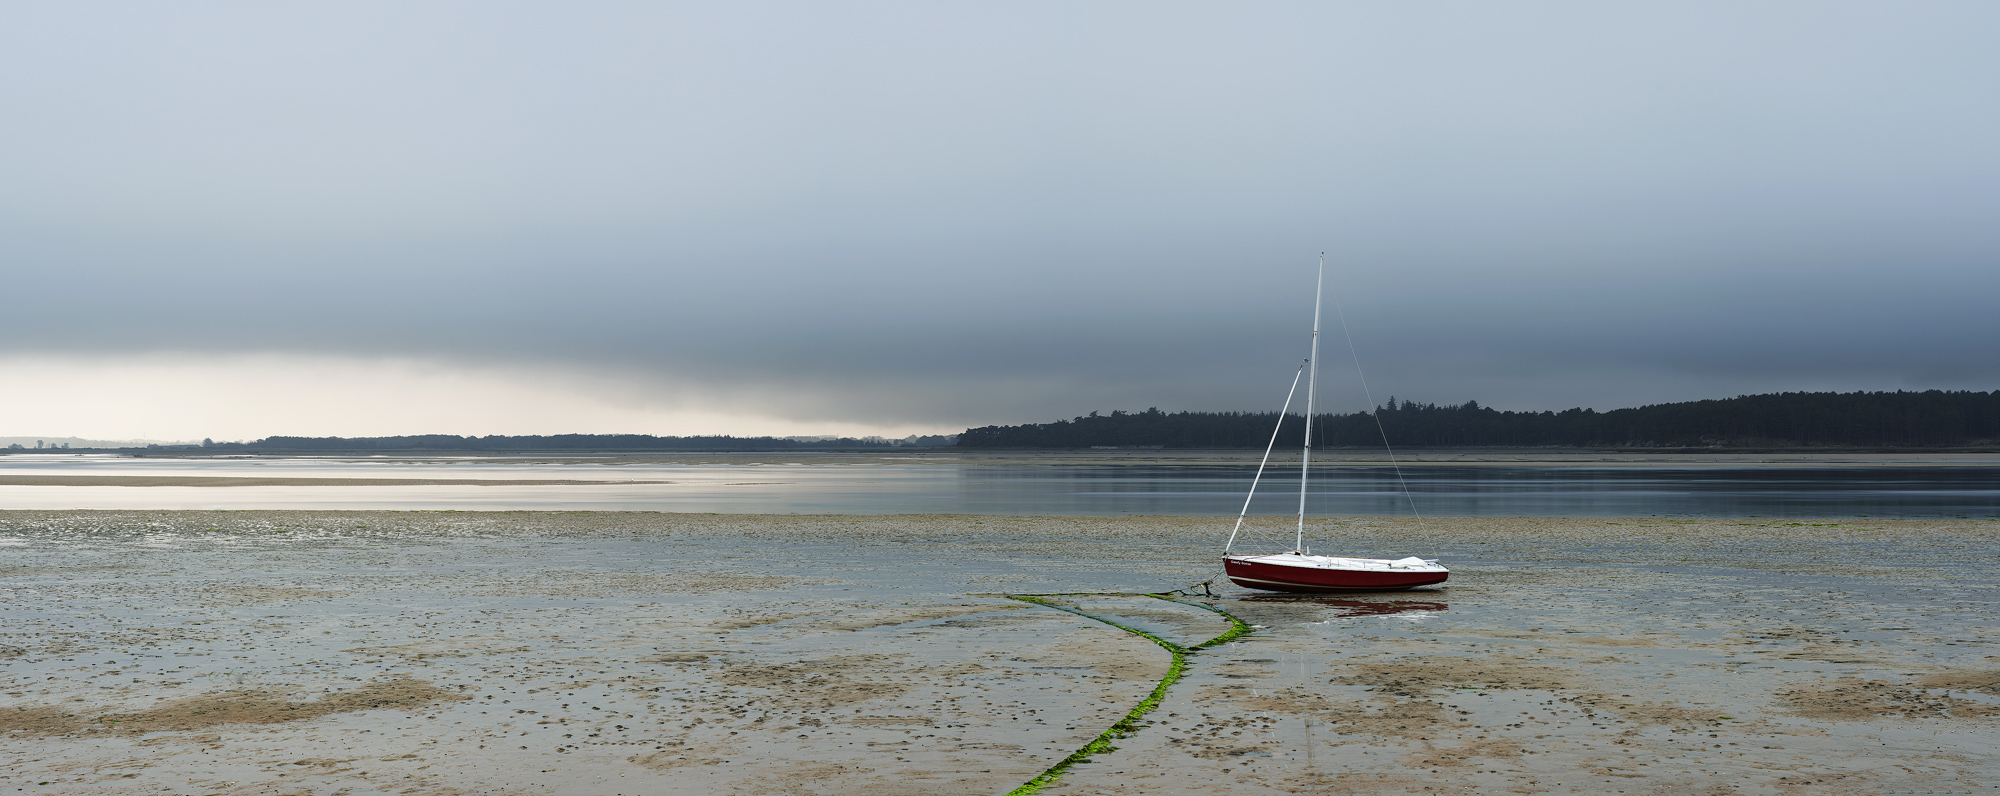 The Gandy Goose dinghy tethered on the foreshore as a storm beyond builds ominously over Forres across the Findhorn estuary.